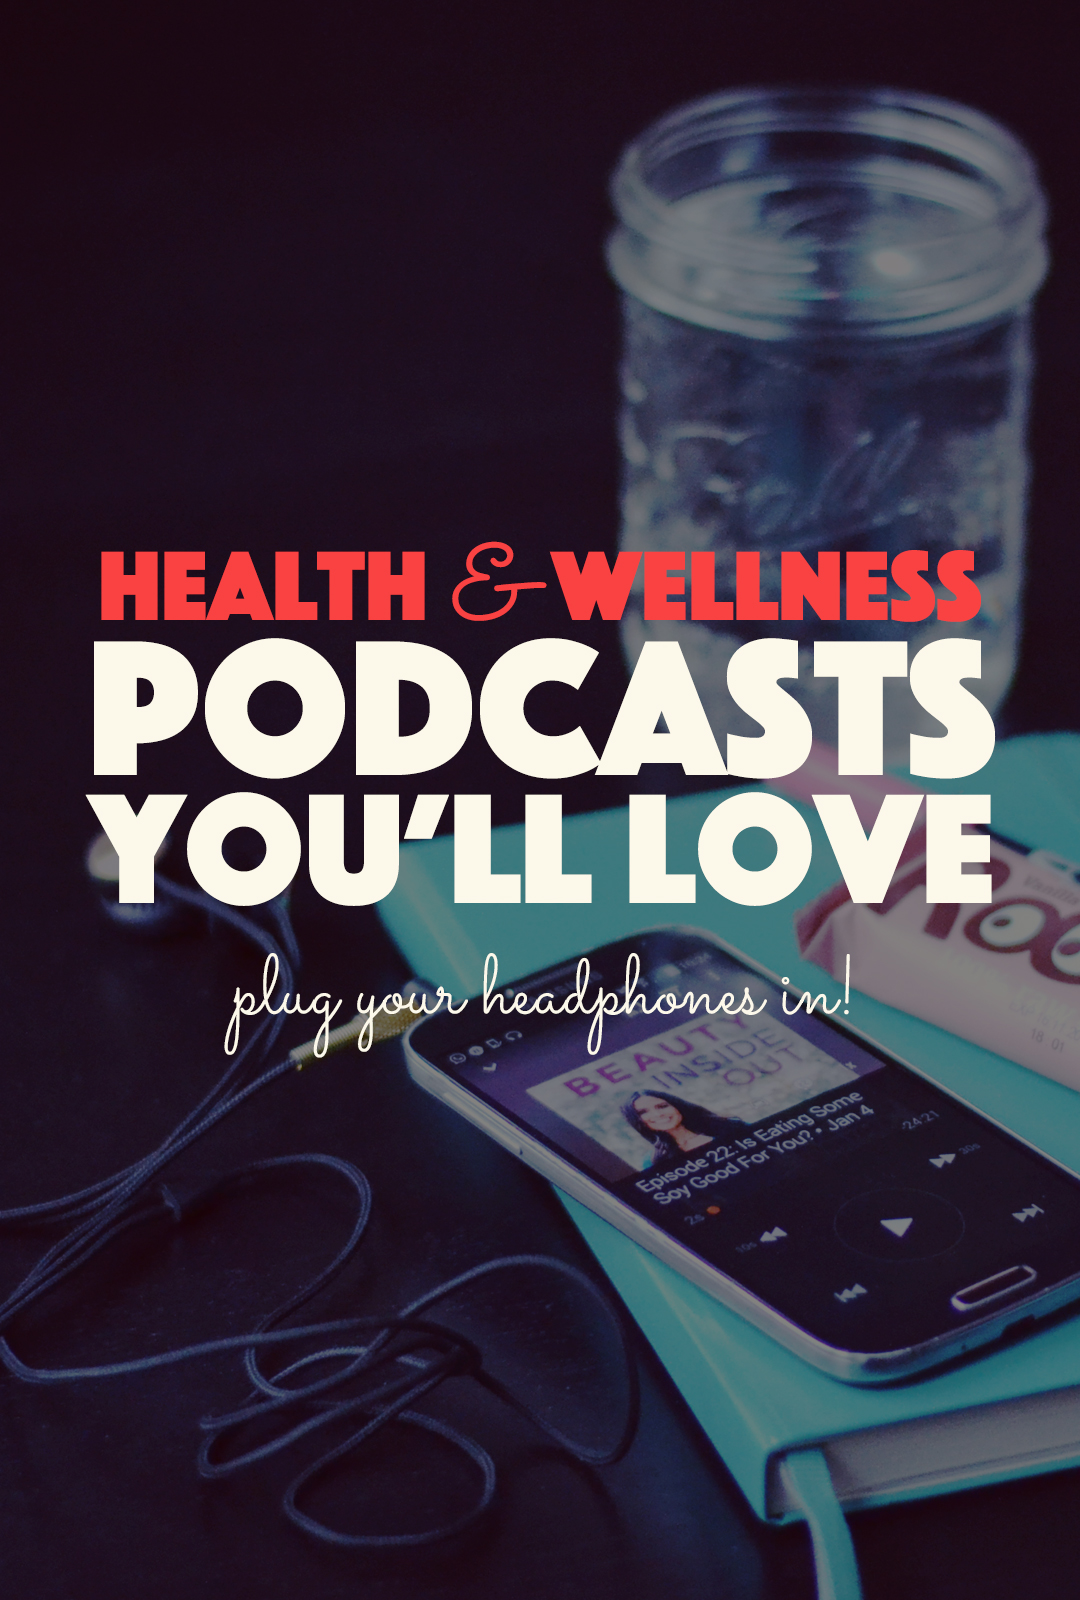 5 Health and Wellness Podcasts You'll Love |http://BananaBloom.com #podcast #health #wellness